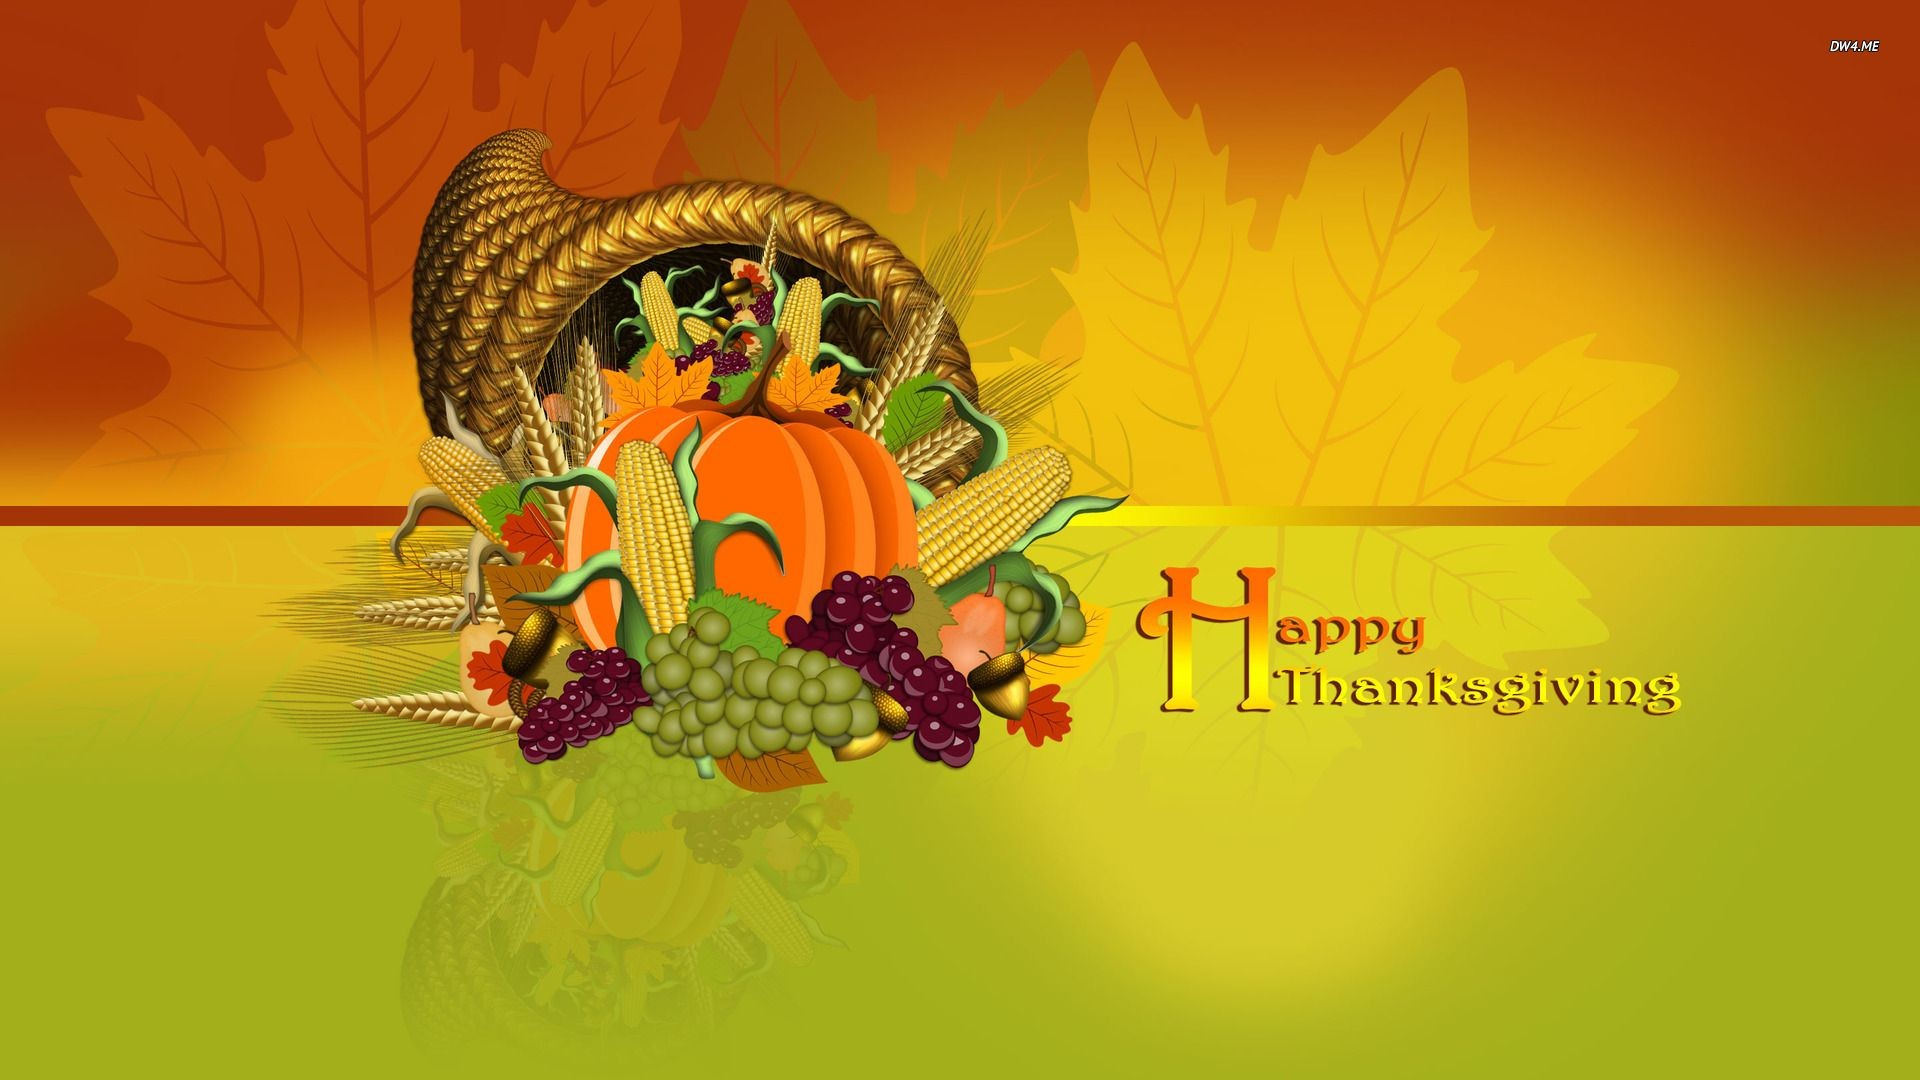 1920x1080 thanksgiving wallpaper: Thanksgiving Wallpaper 1920x1080 (73+ Images